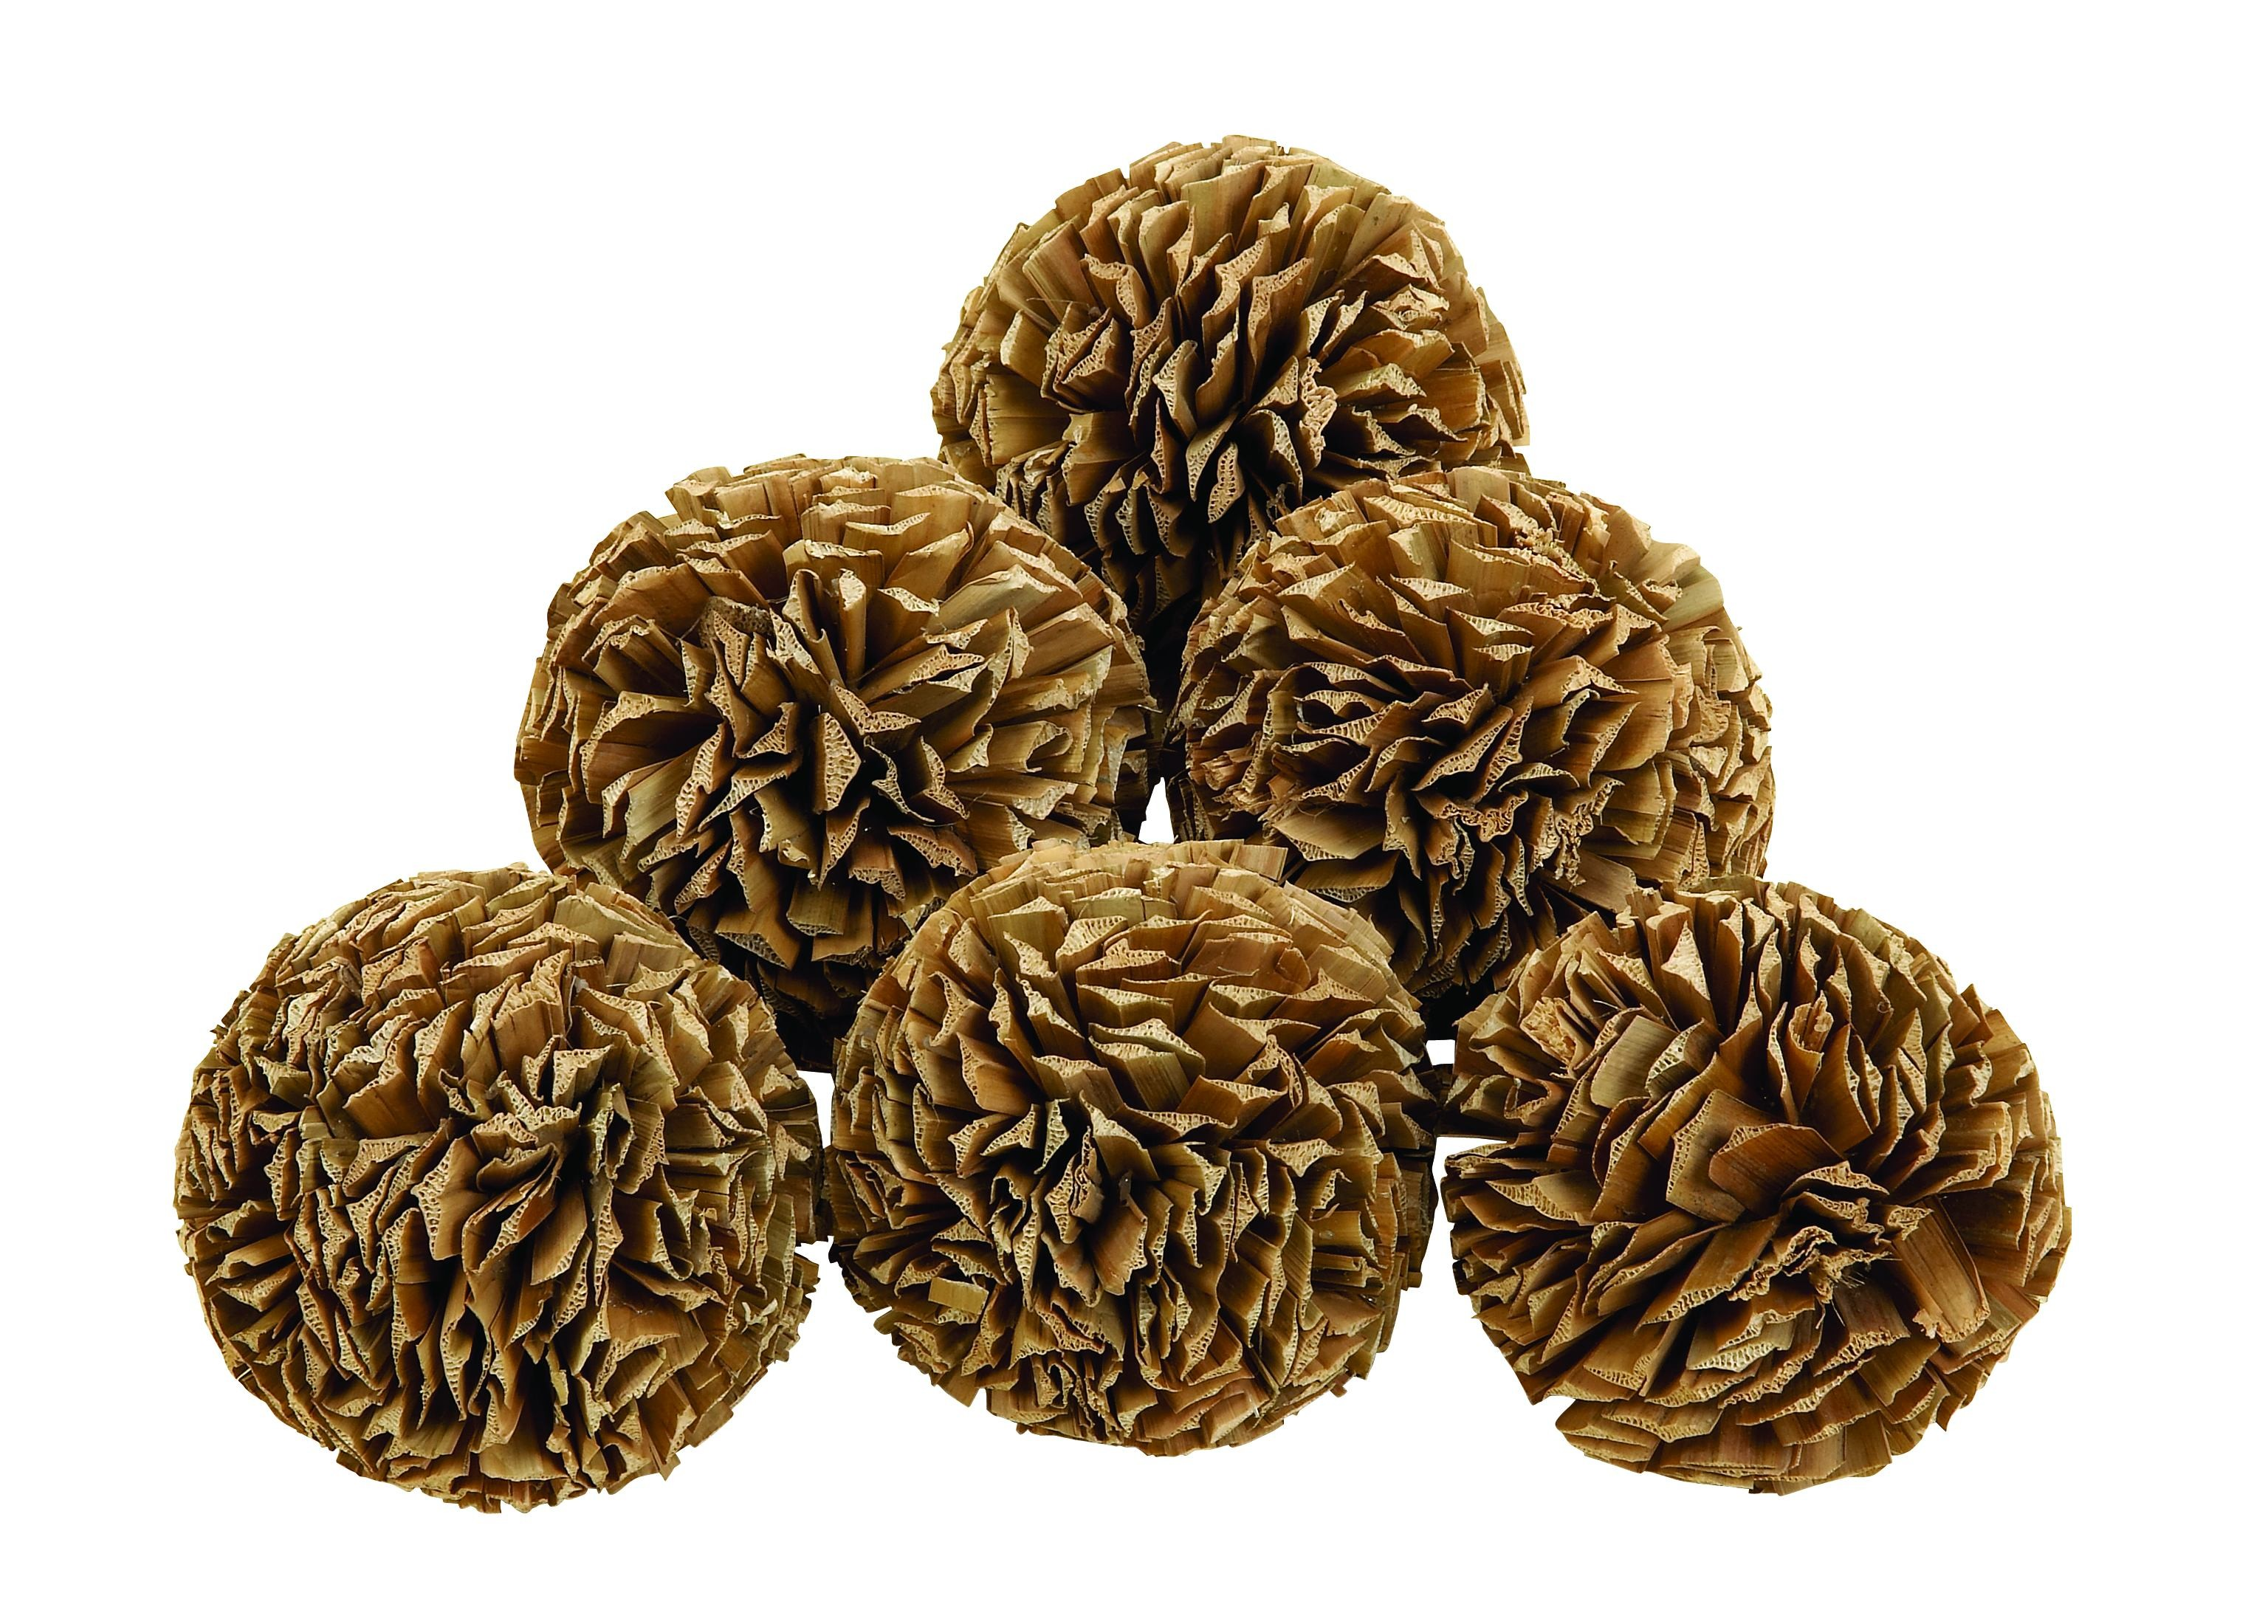 natural decorative orbs in brown for home or especially for table accessories ideas